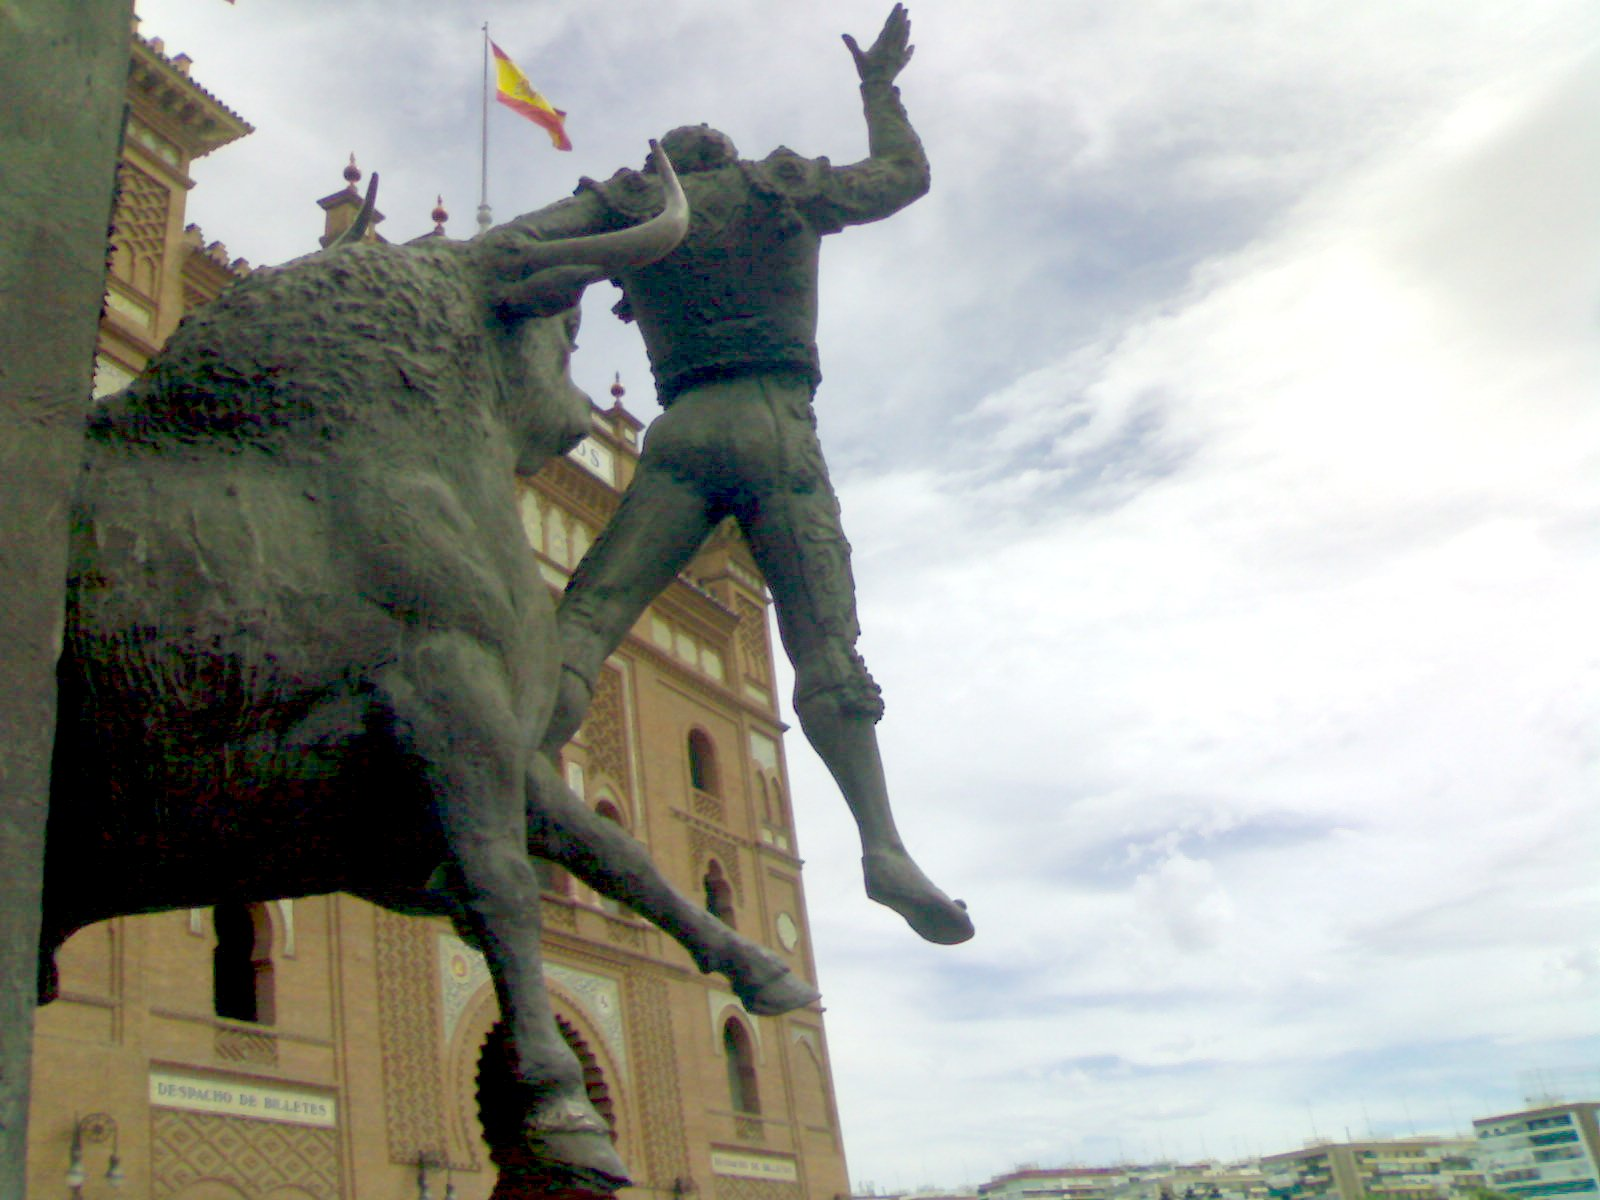 http://upload.wikimedia.org/wikipedia/commons/d/d2/Toros_in_Spain.jpg